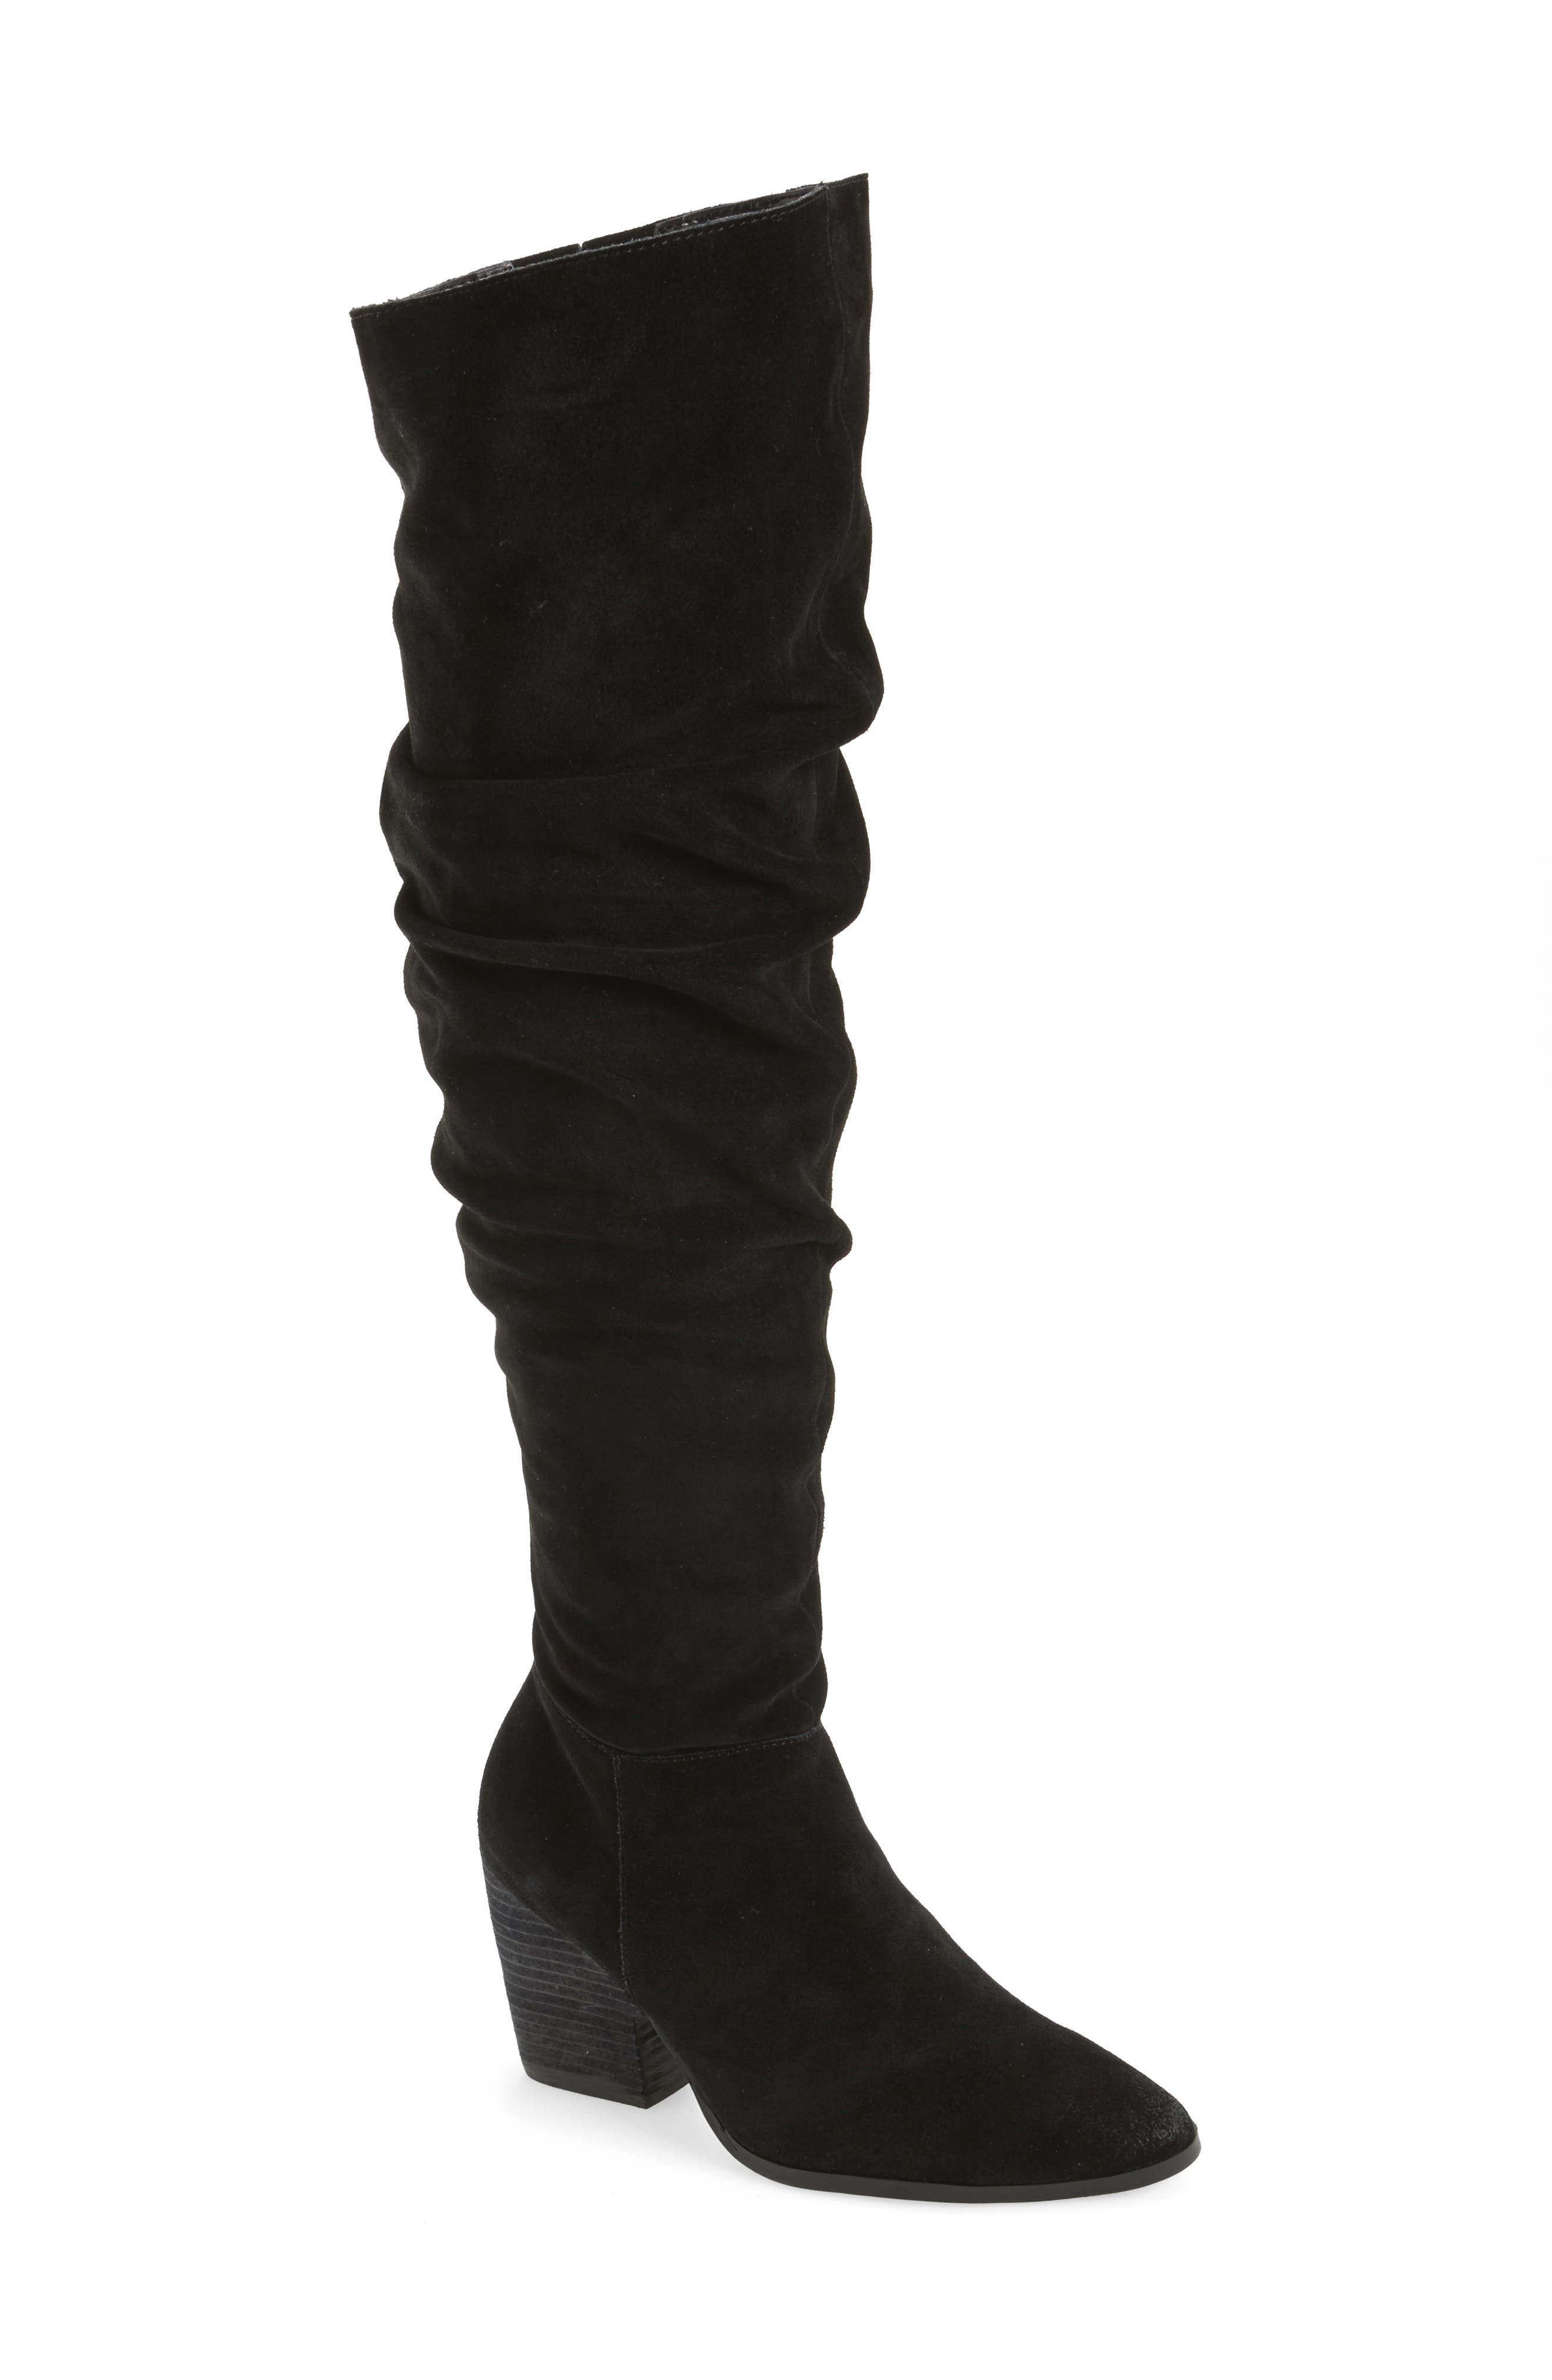 Noelle Over the Knee Boot,                             Main thumbnail 1, color,                             001